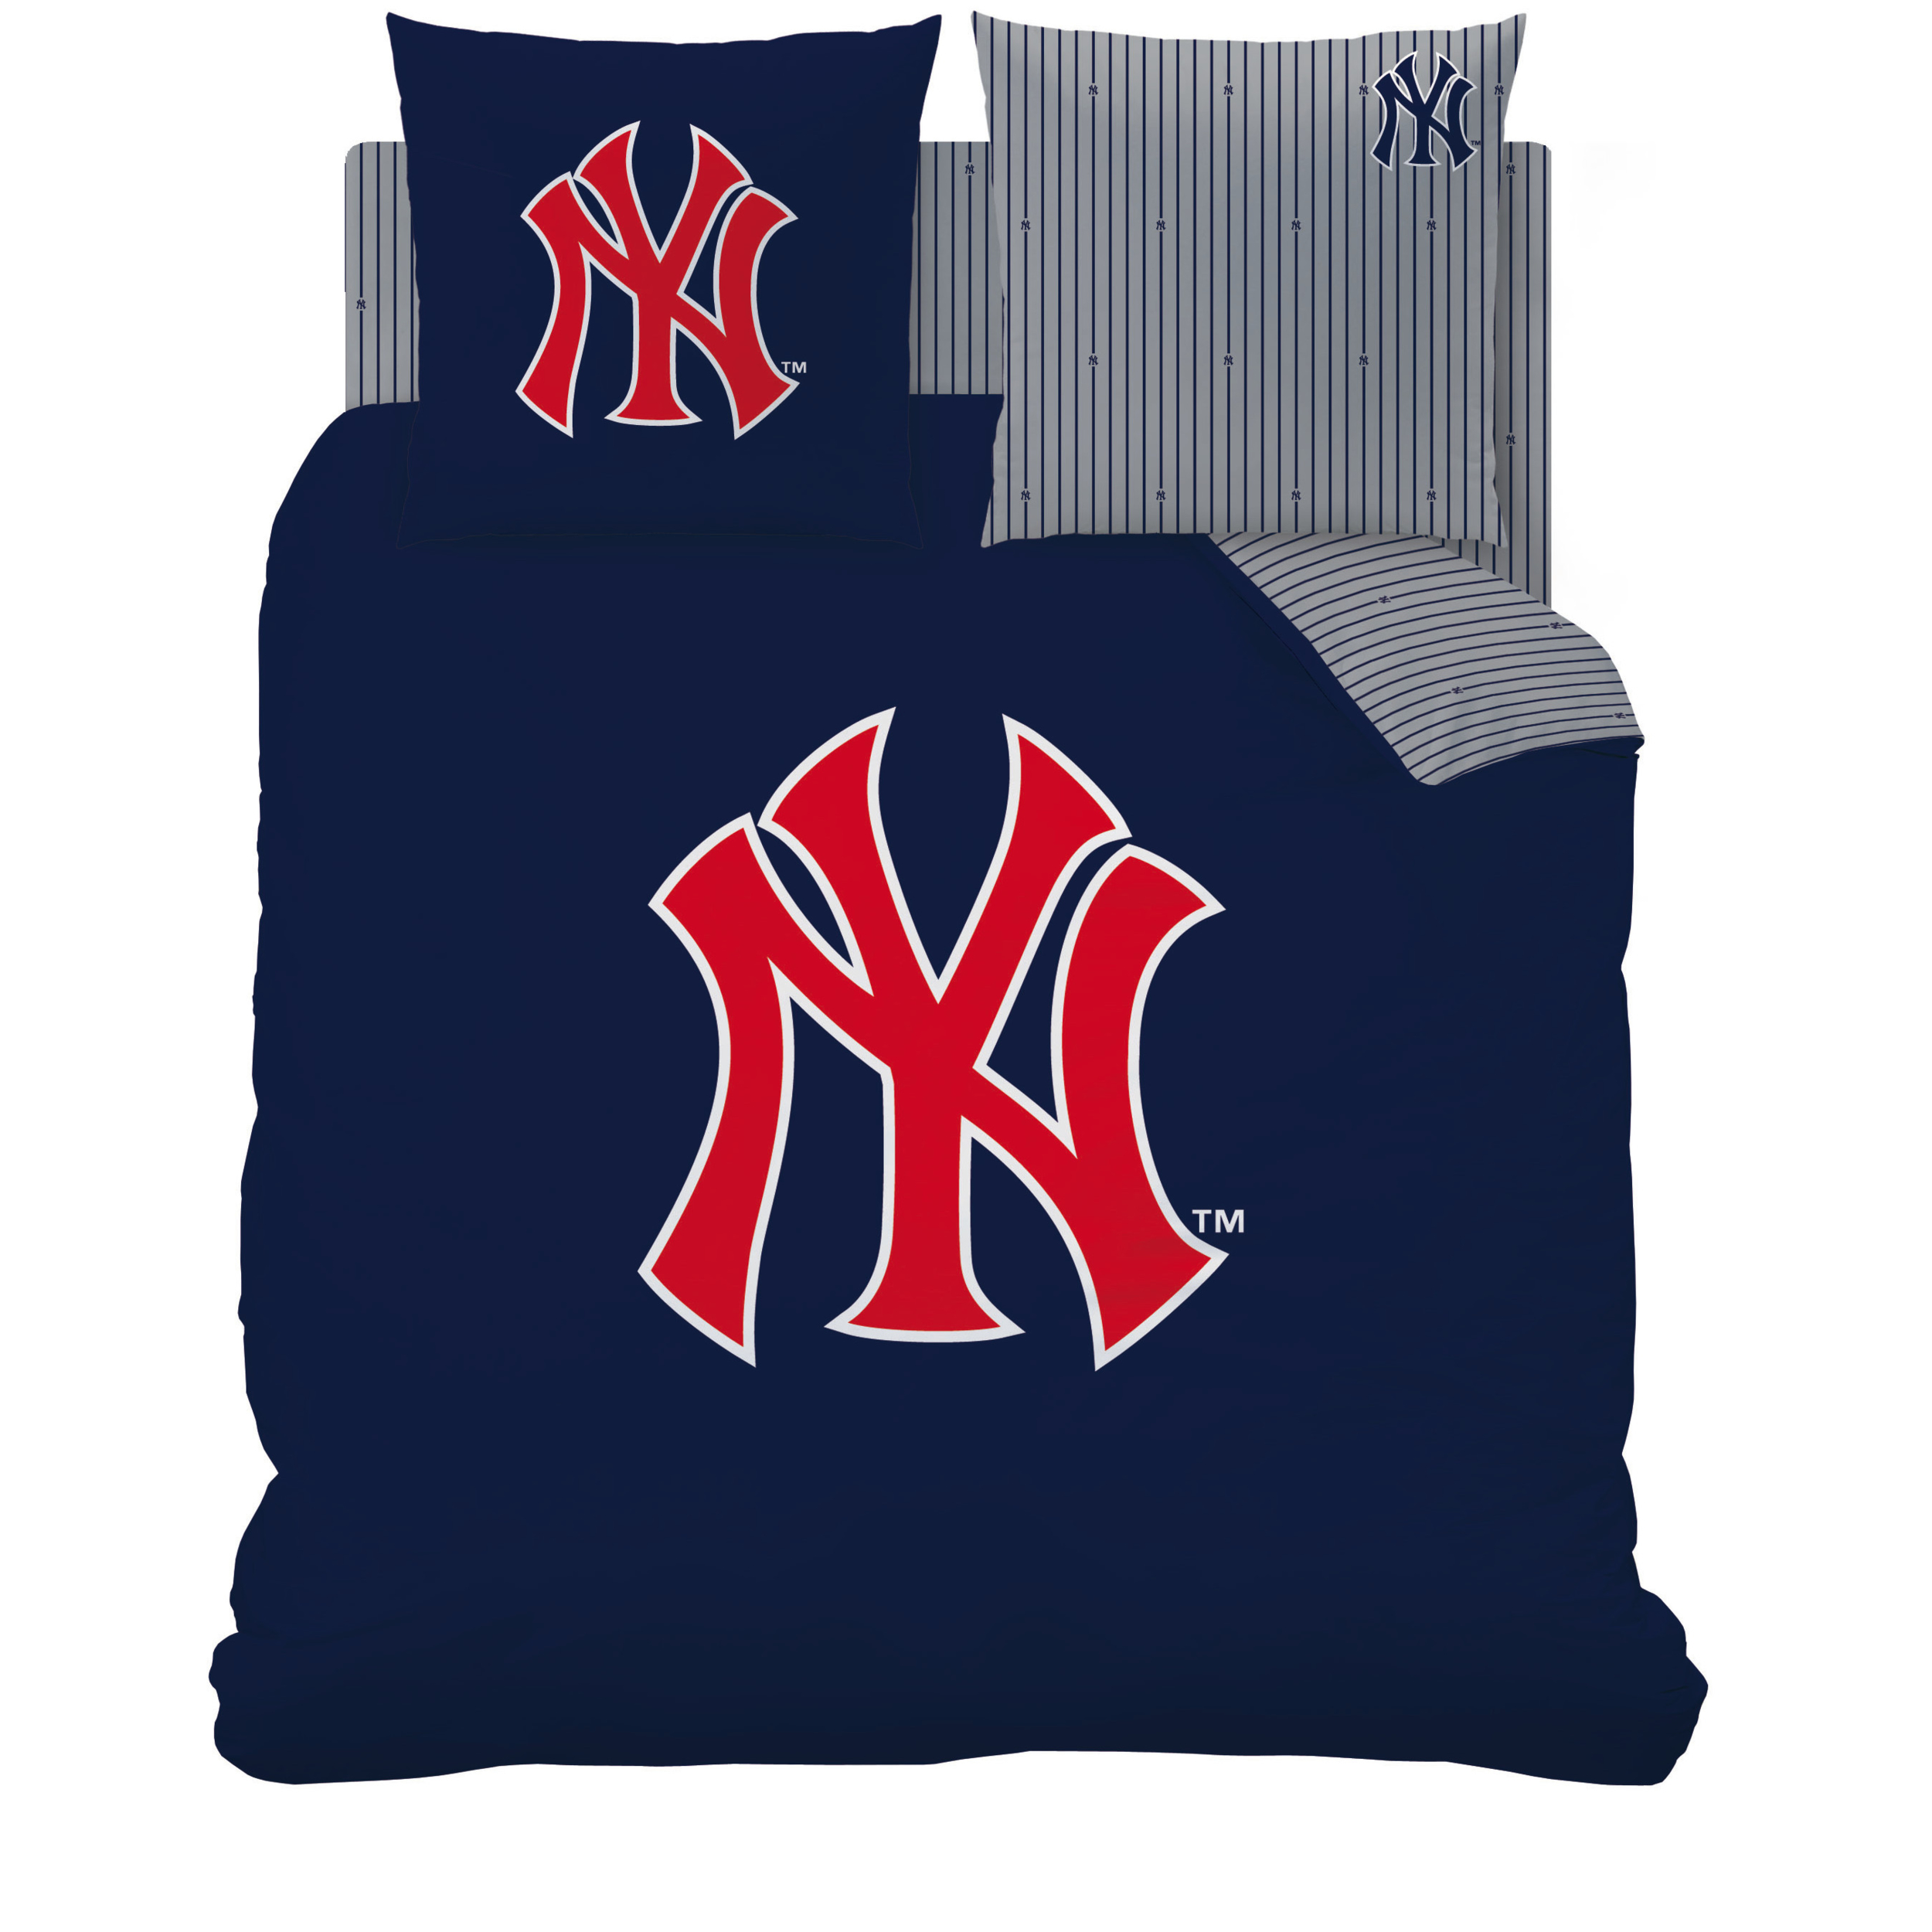 housse de couette new york yankees parure de lit 200 x 200 cm ny decokids tous leurs h ros. Black Bedroom Furniture Sets. Home Design Ideas